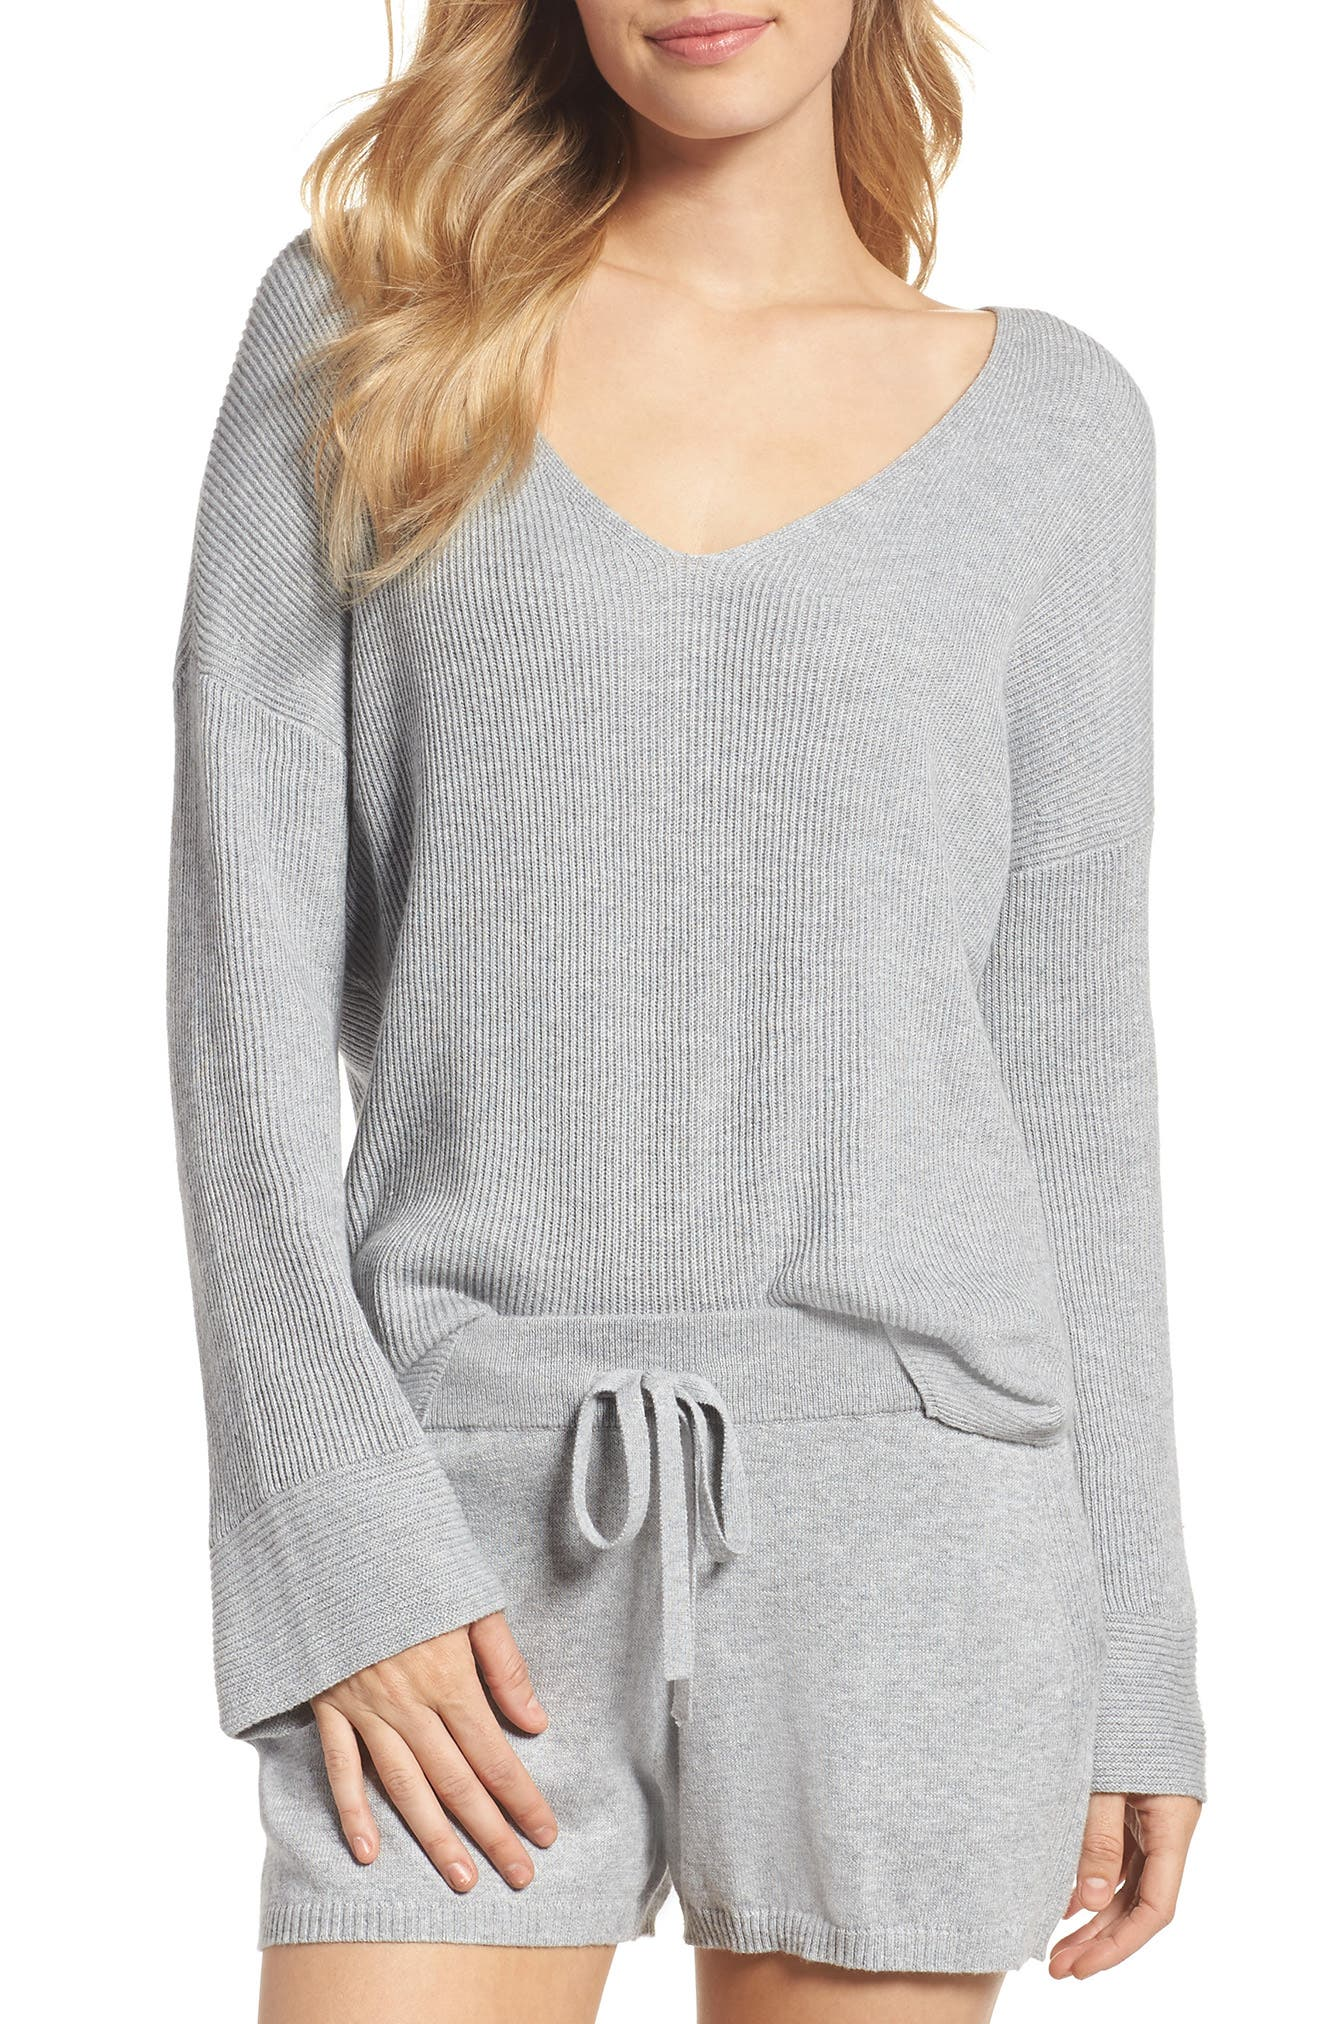 Veronica Lounge Pullover,                             Main thumbnail 1, color,